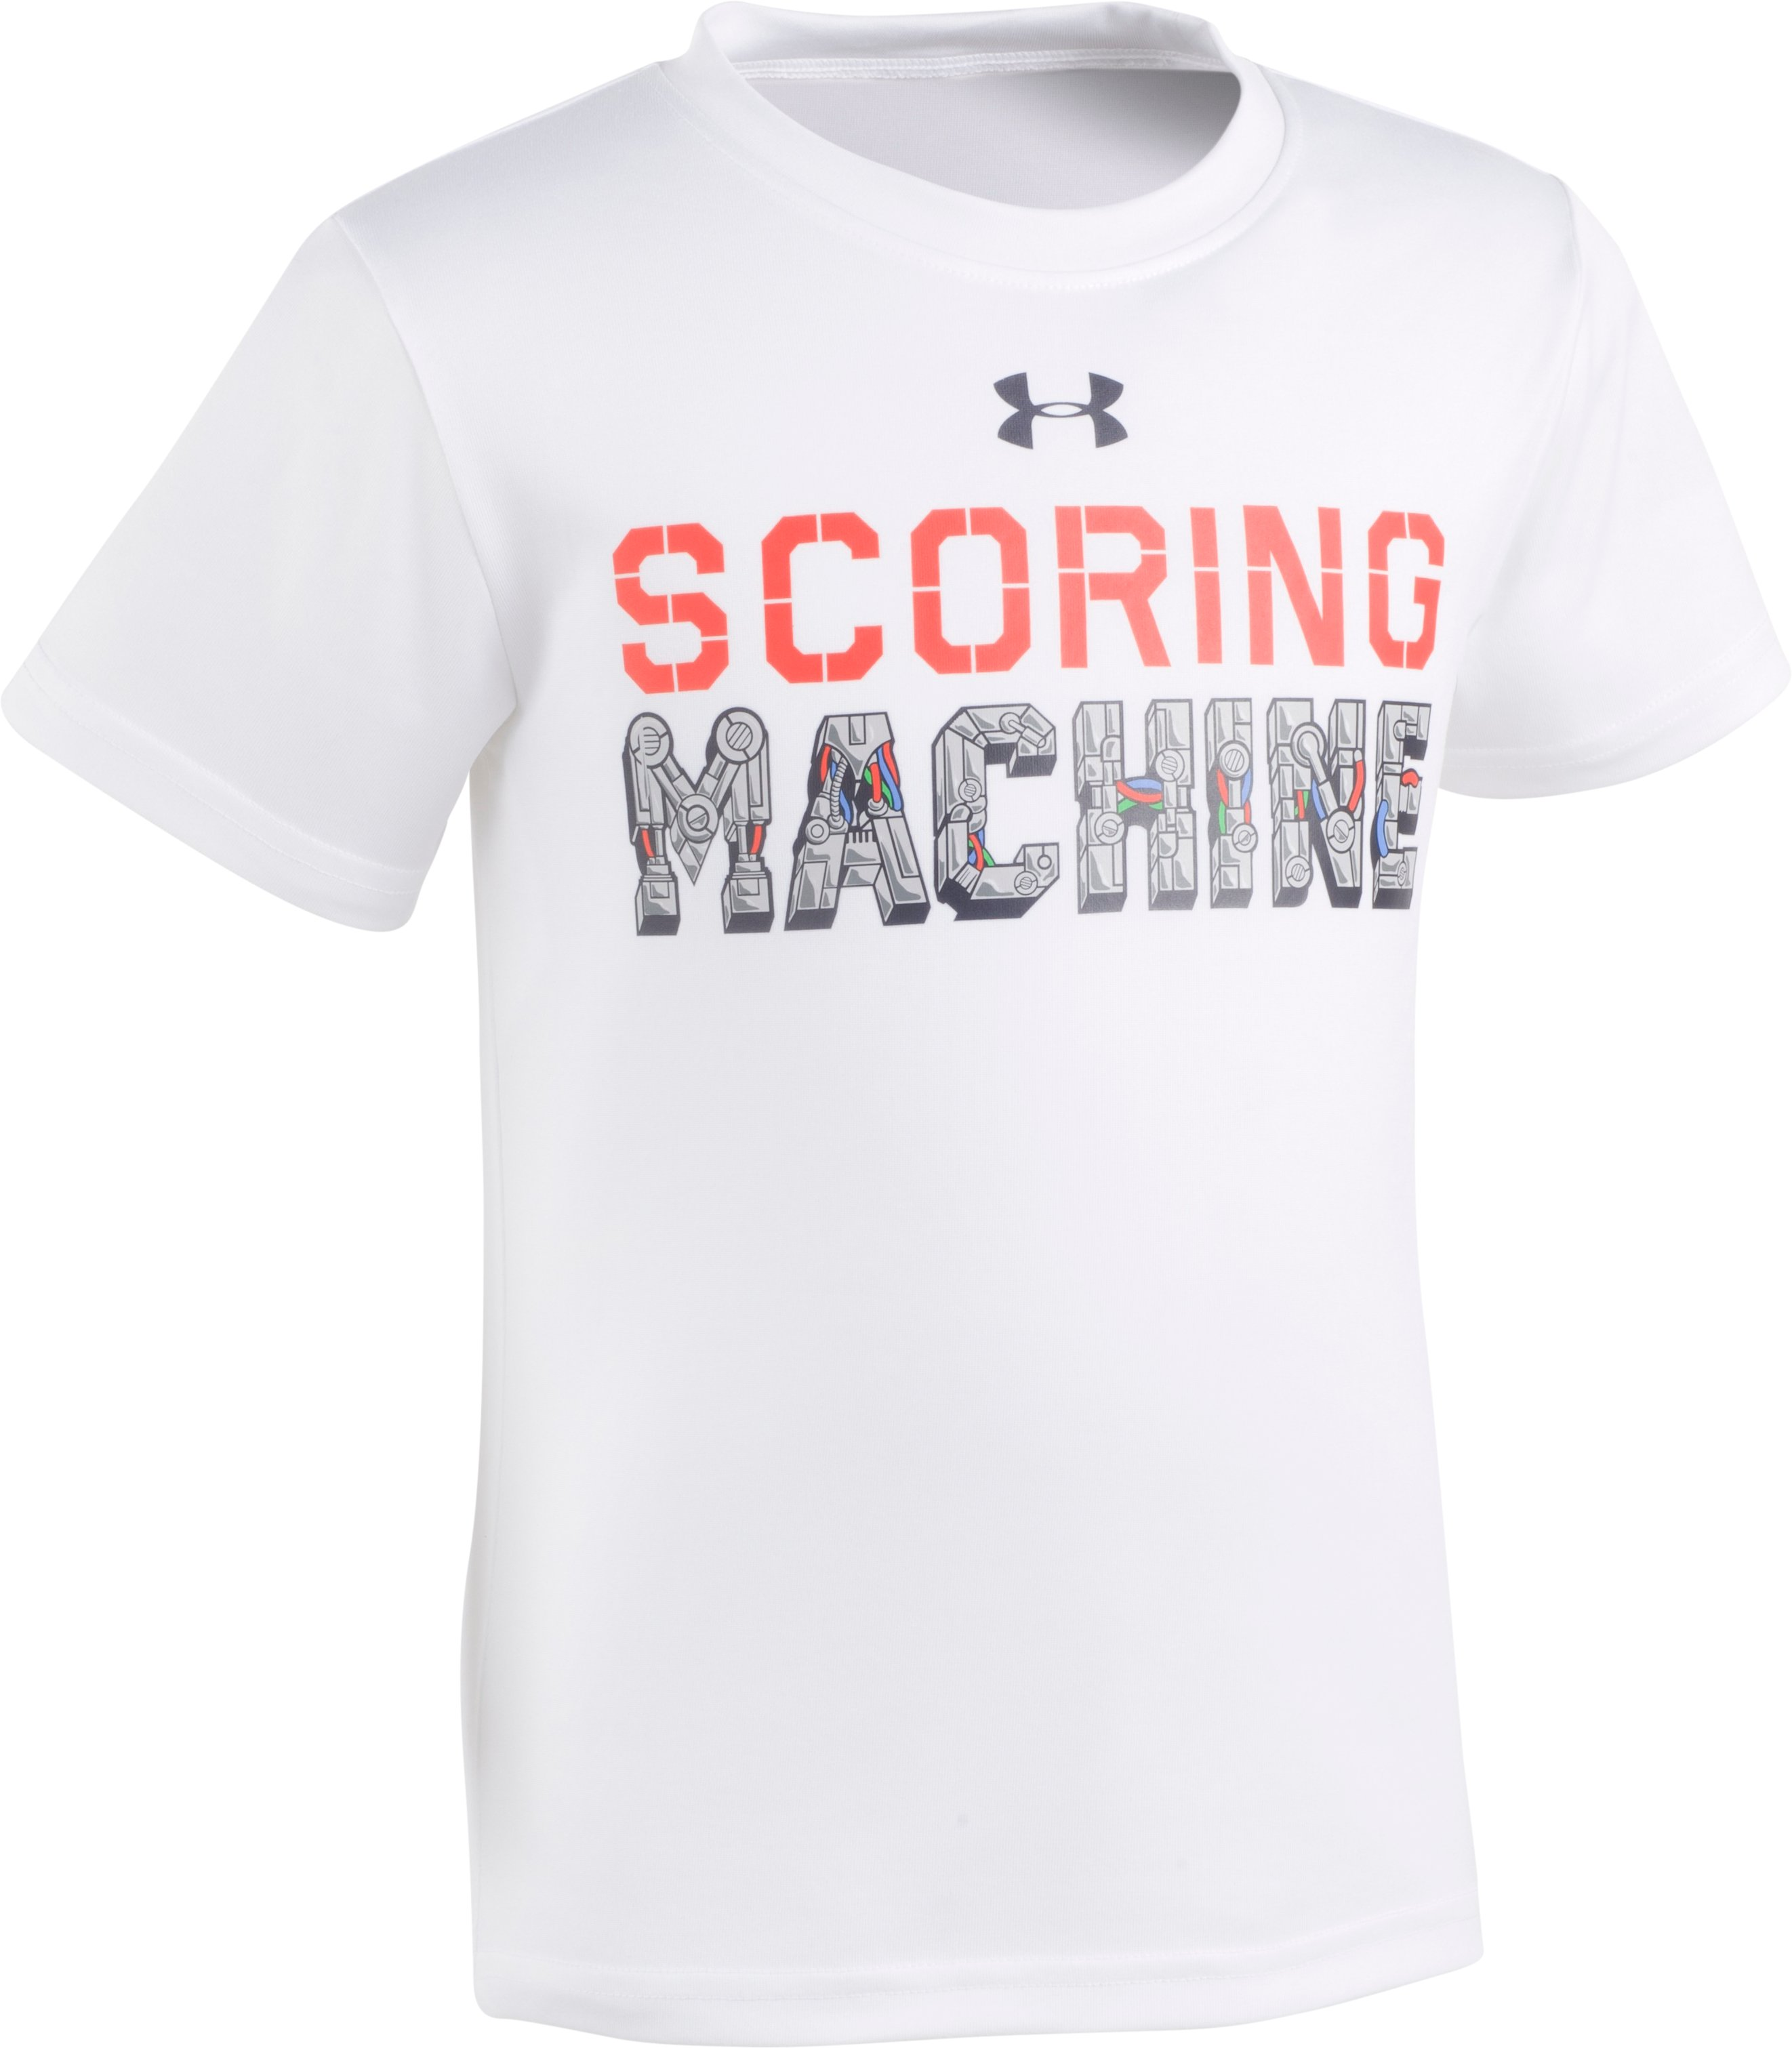 Boys' Pre-School UA Scoring Machine Short Sleeve Shirt, White